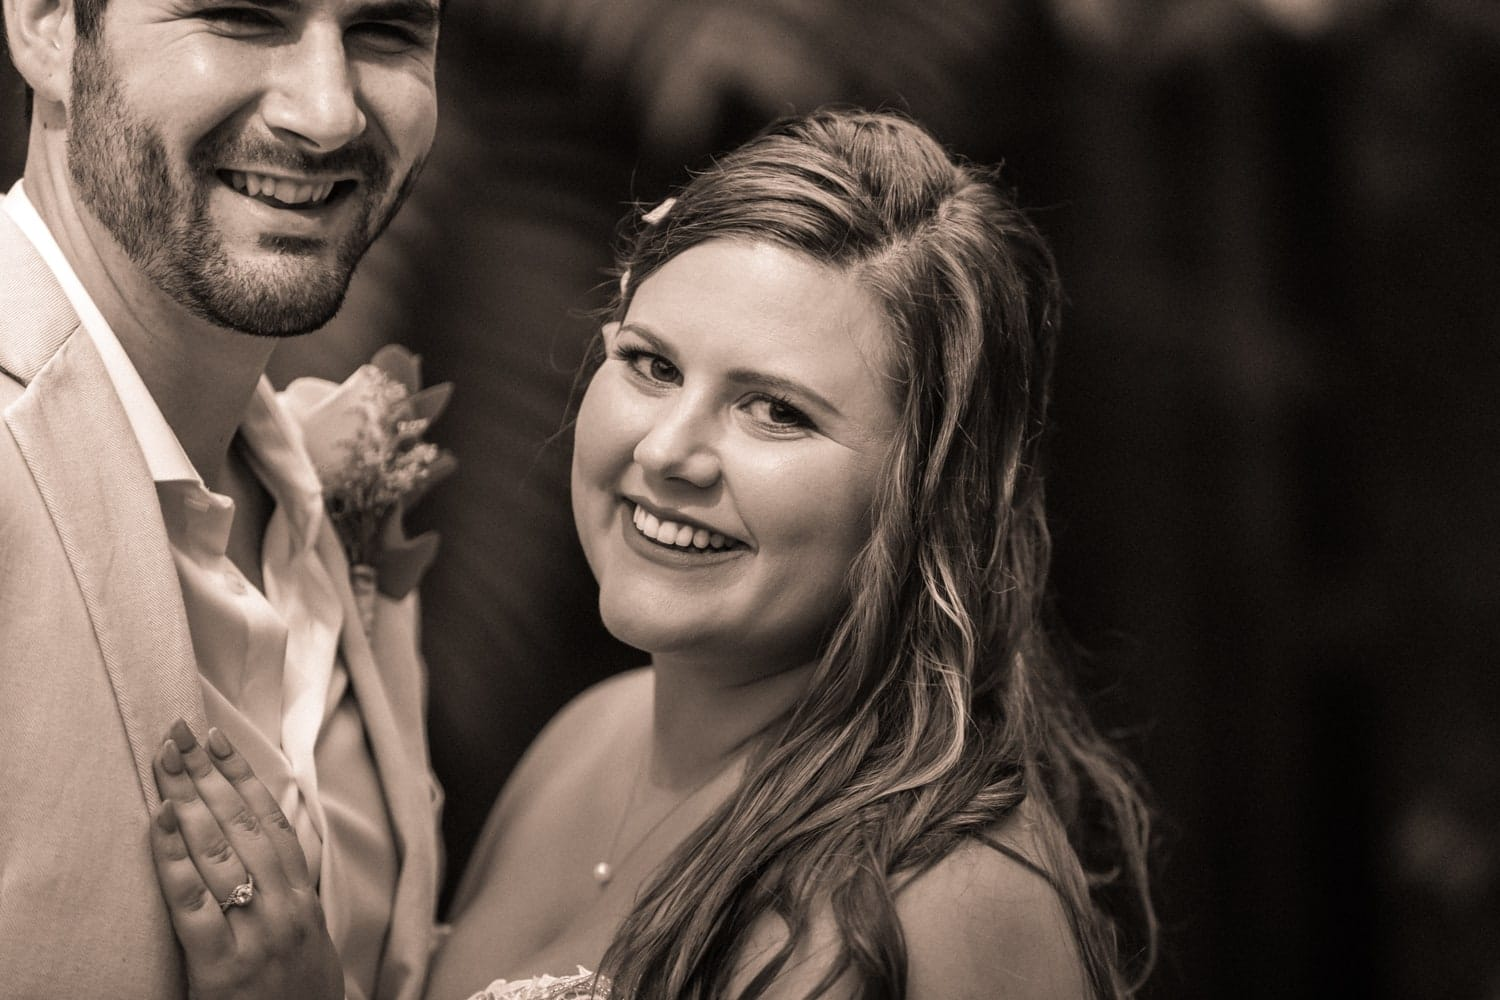 Soon-to-be-married couple smiles for picture before wedding ceremony in Costa Rica.